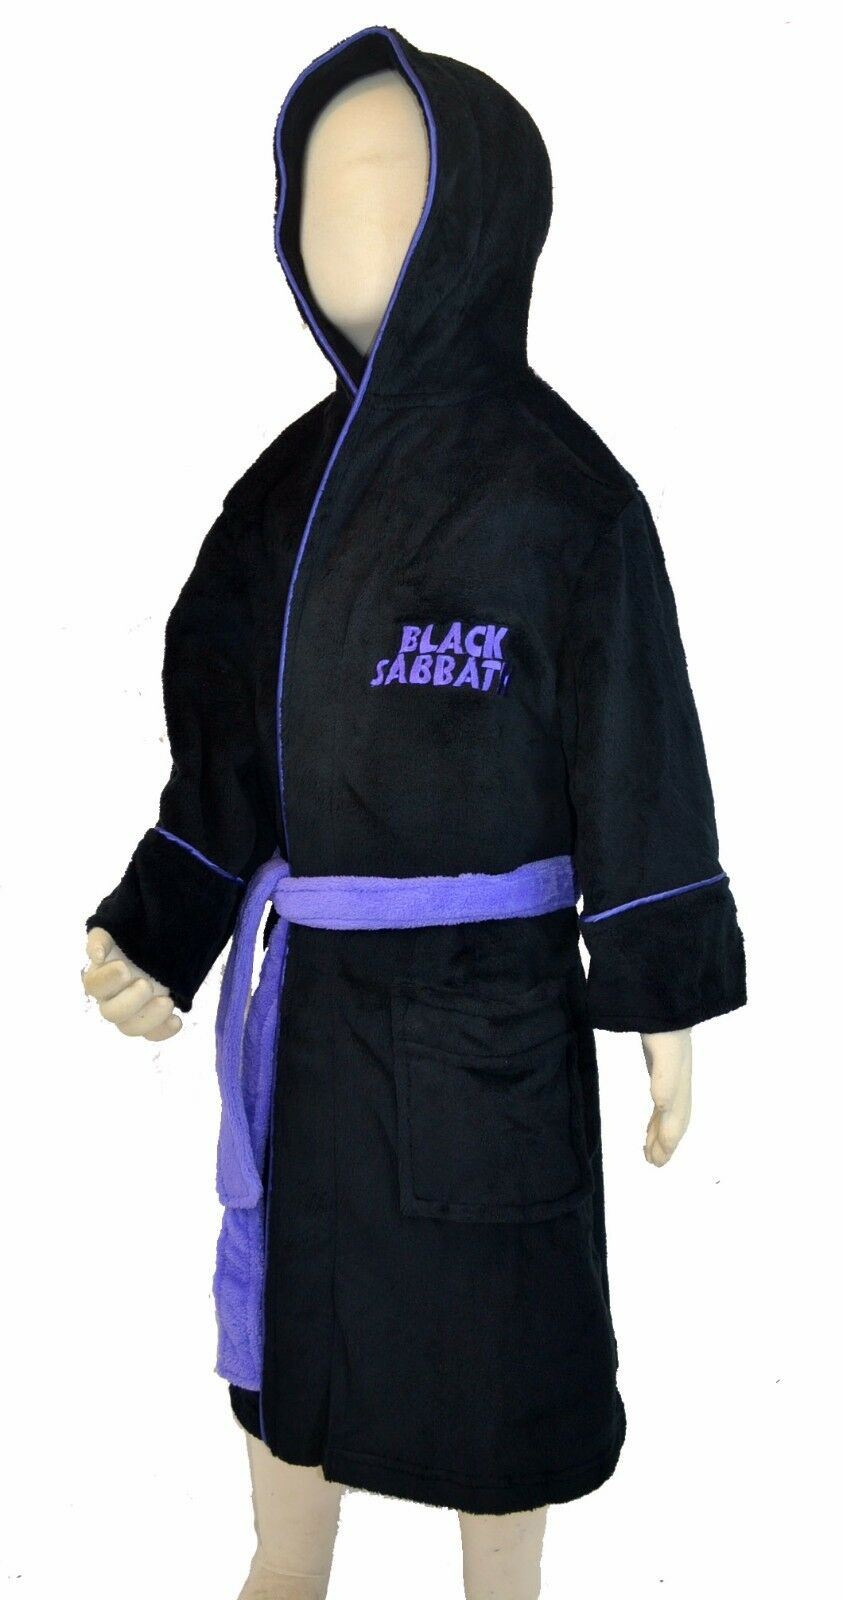 Black Sabbath Master Of Reality Kids Bathrobe - Merch Rox